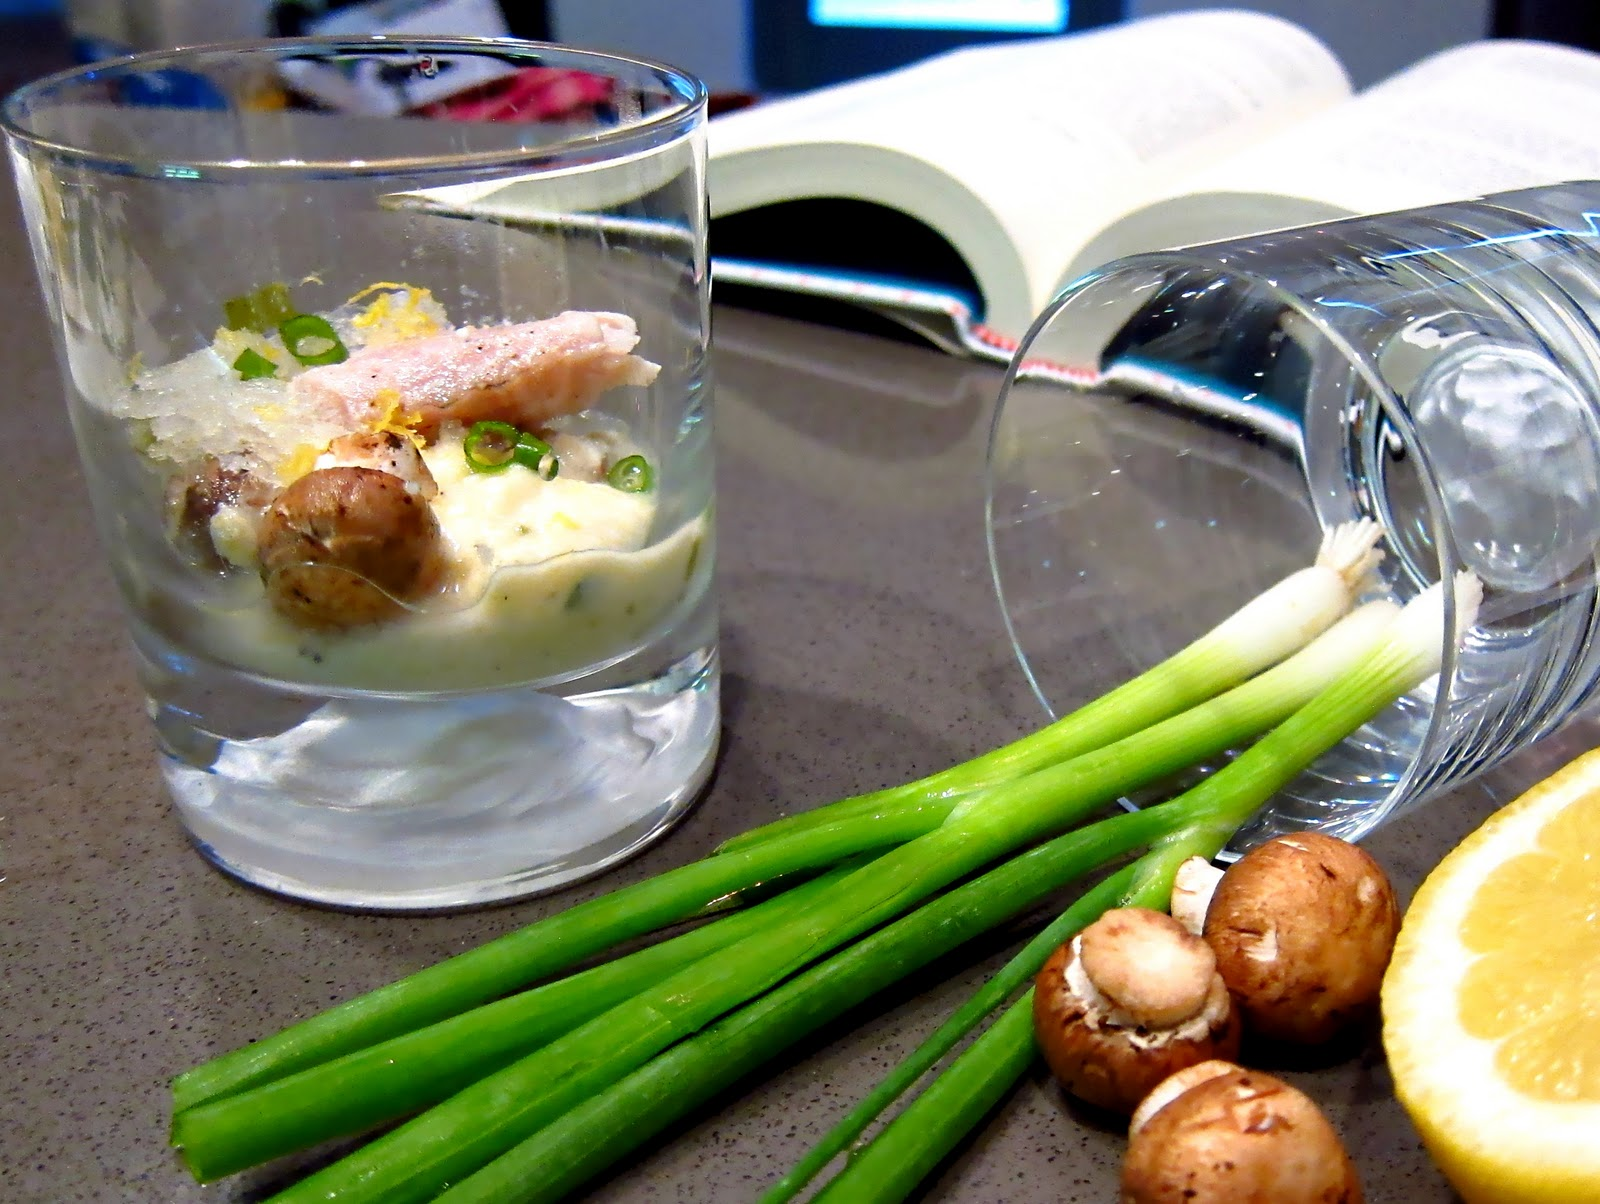 Bacon and souffl showcasing dinner ideas for two 5 star for Poaching fish in wine